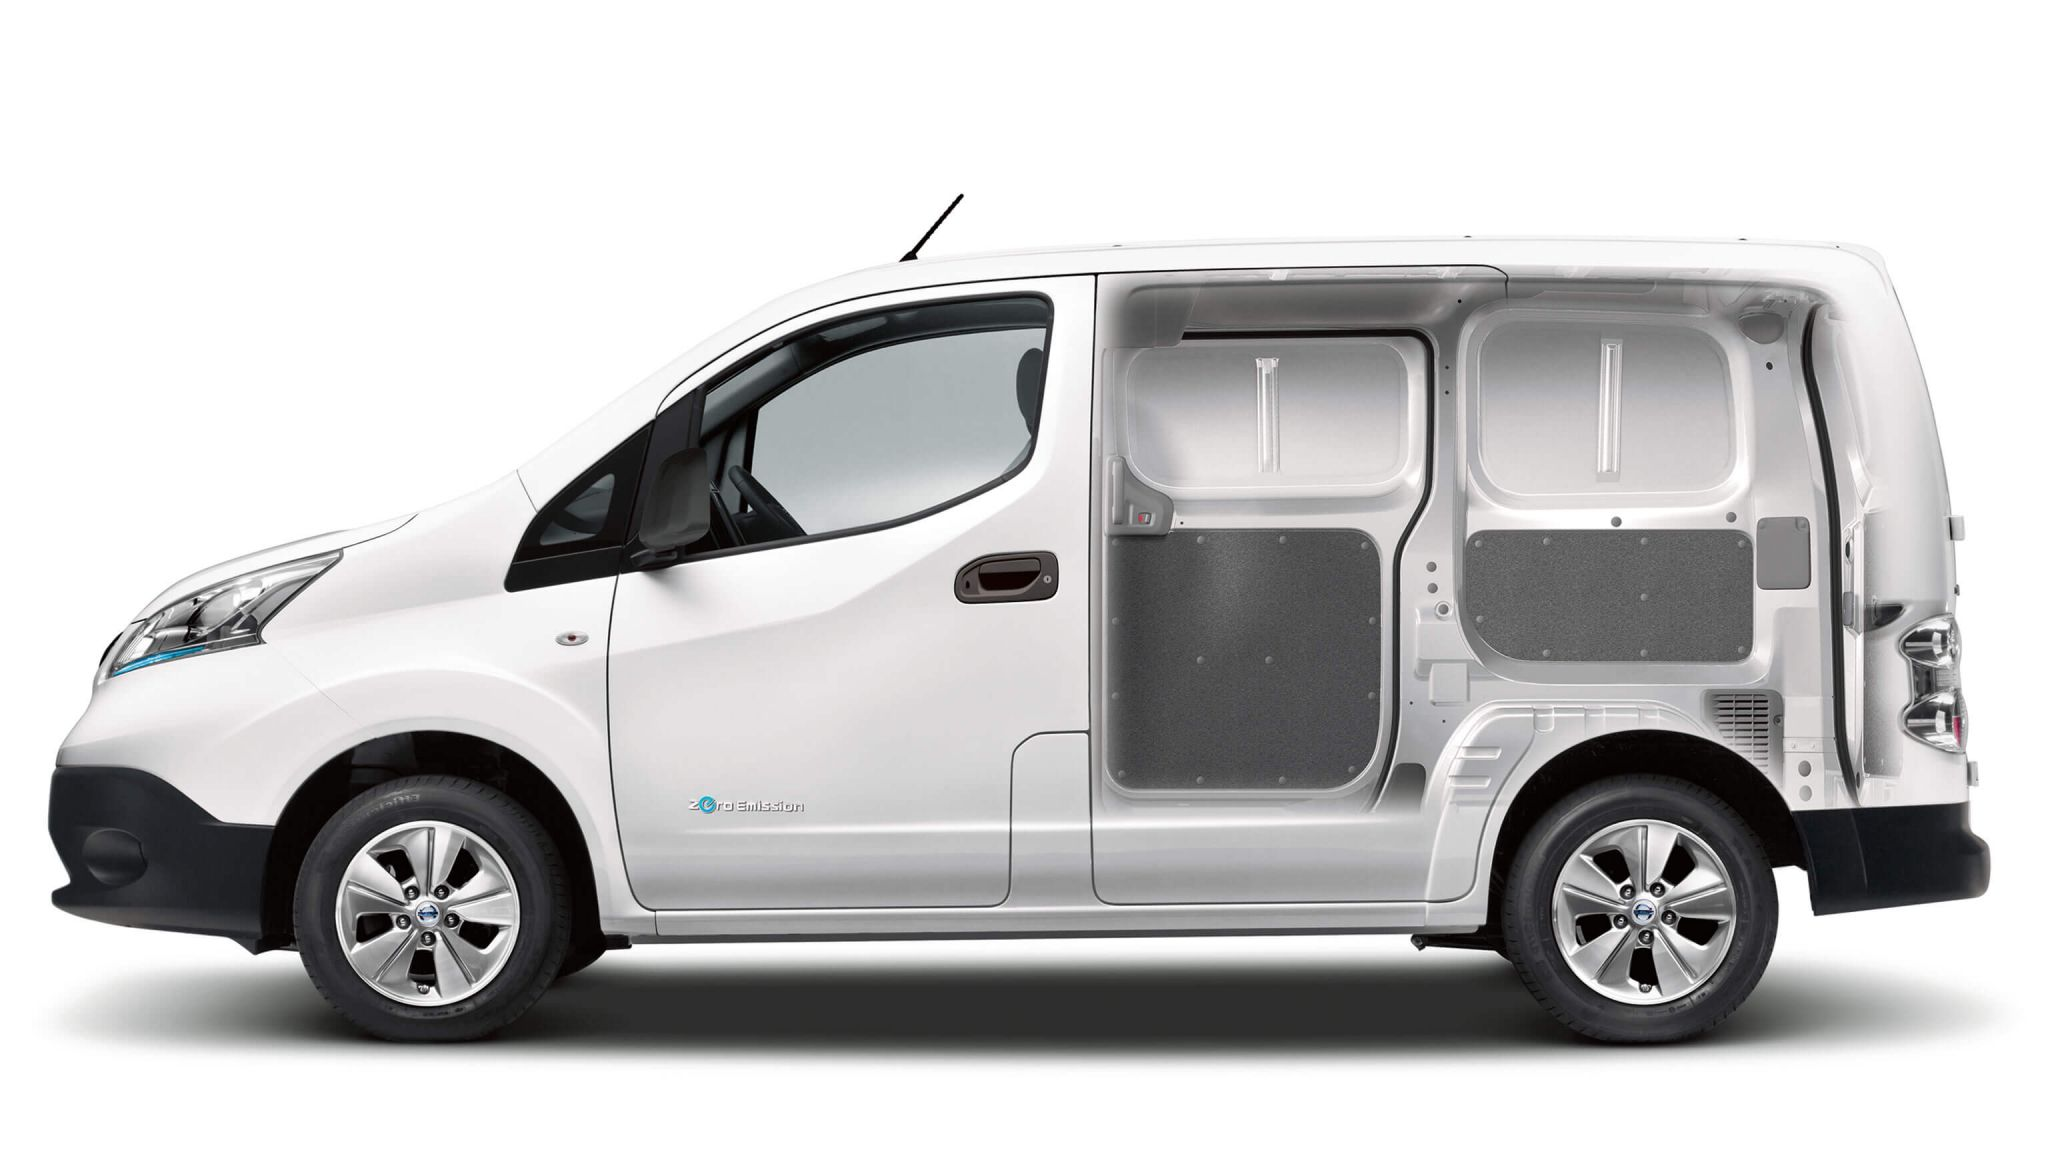 nissan e nv200 van bestelauto bochane groep. Black Bedroom Furniture Sets. Home Design Ideas